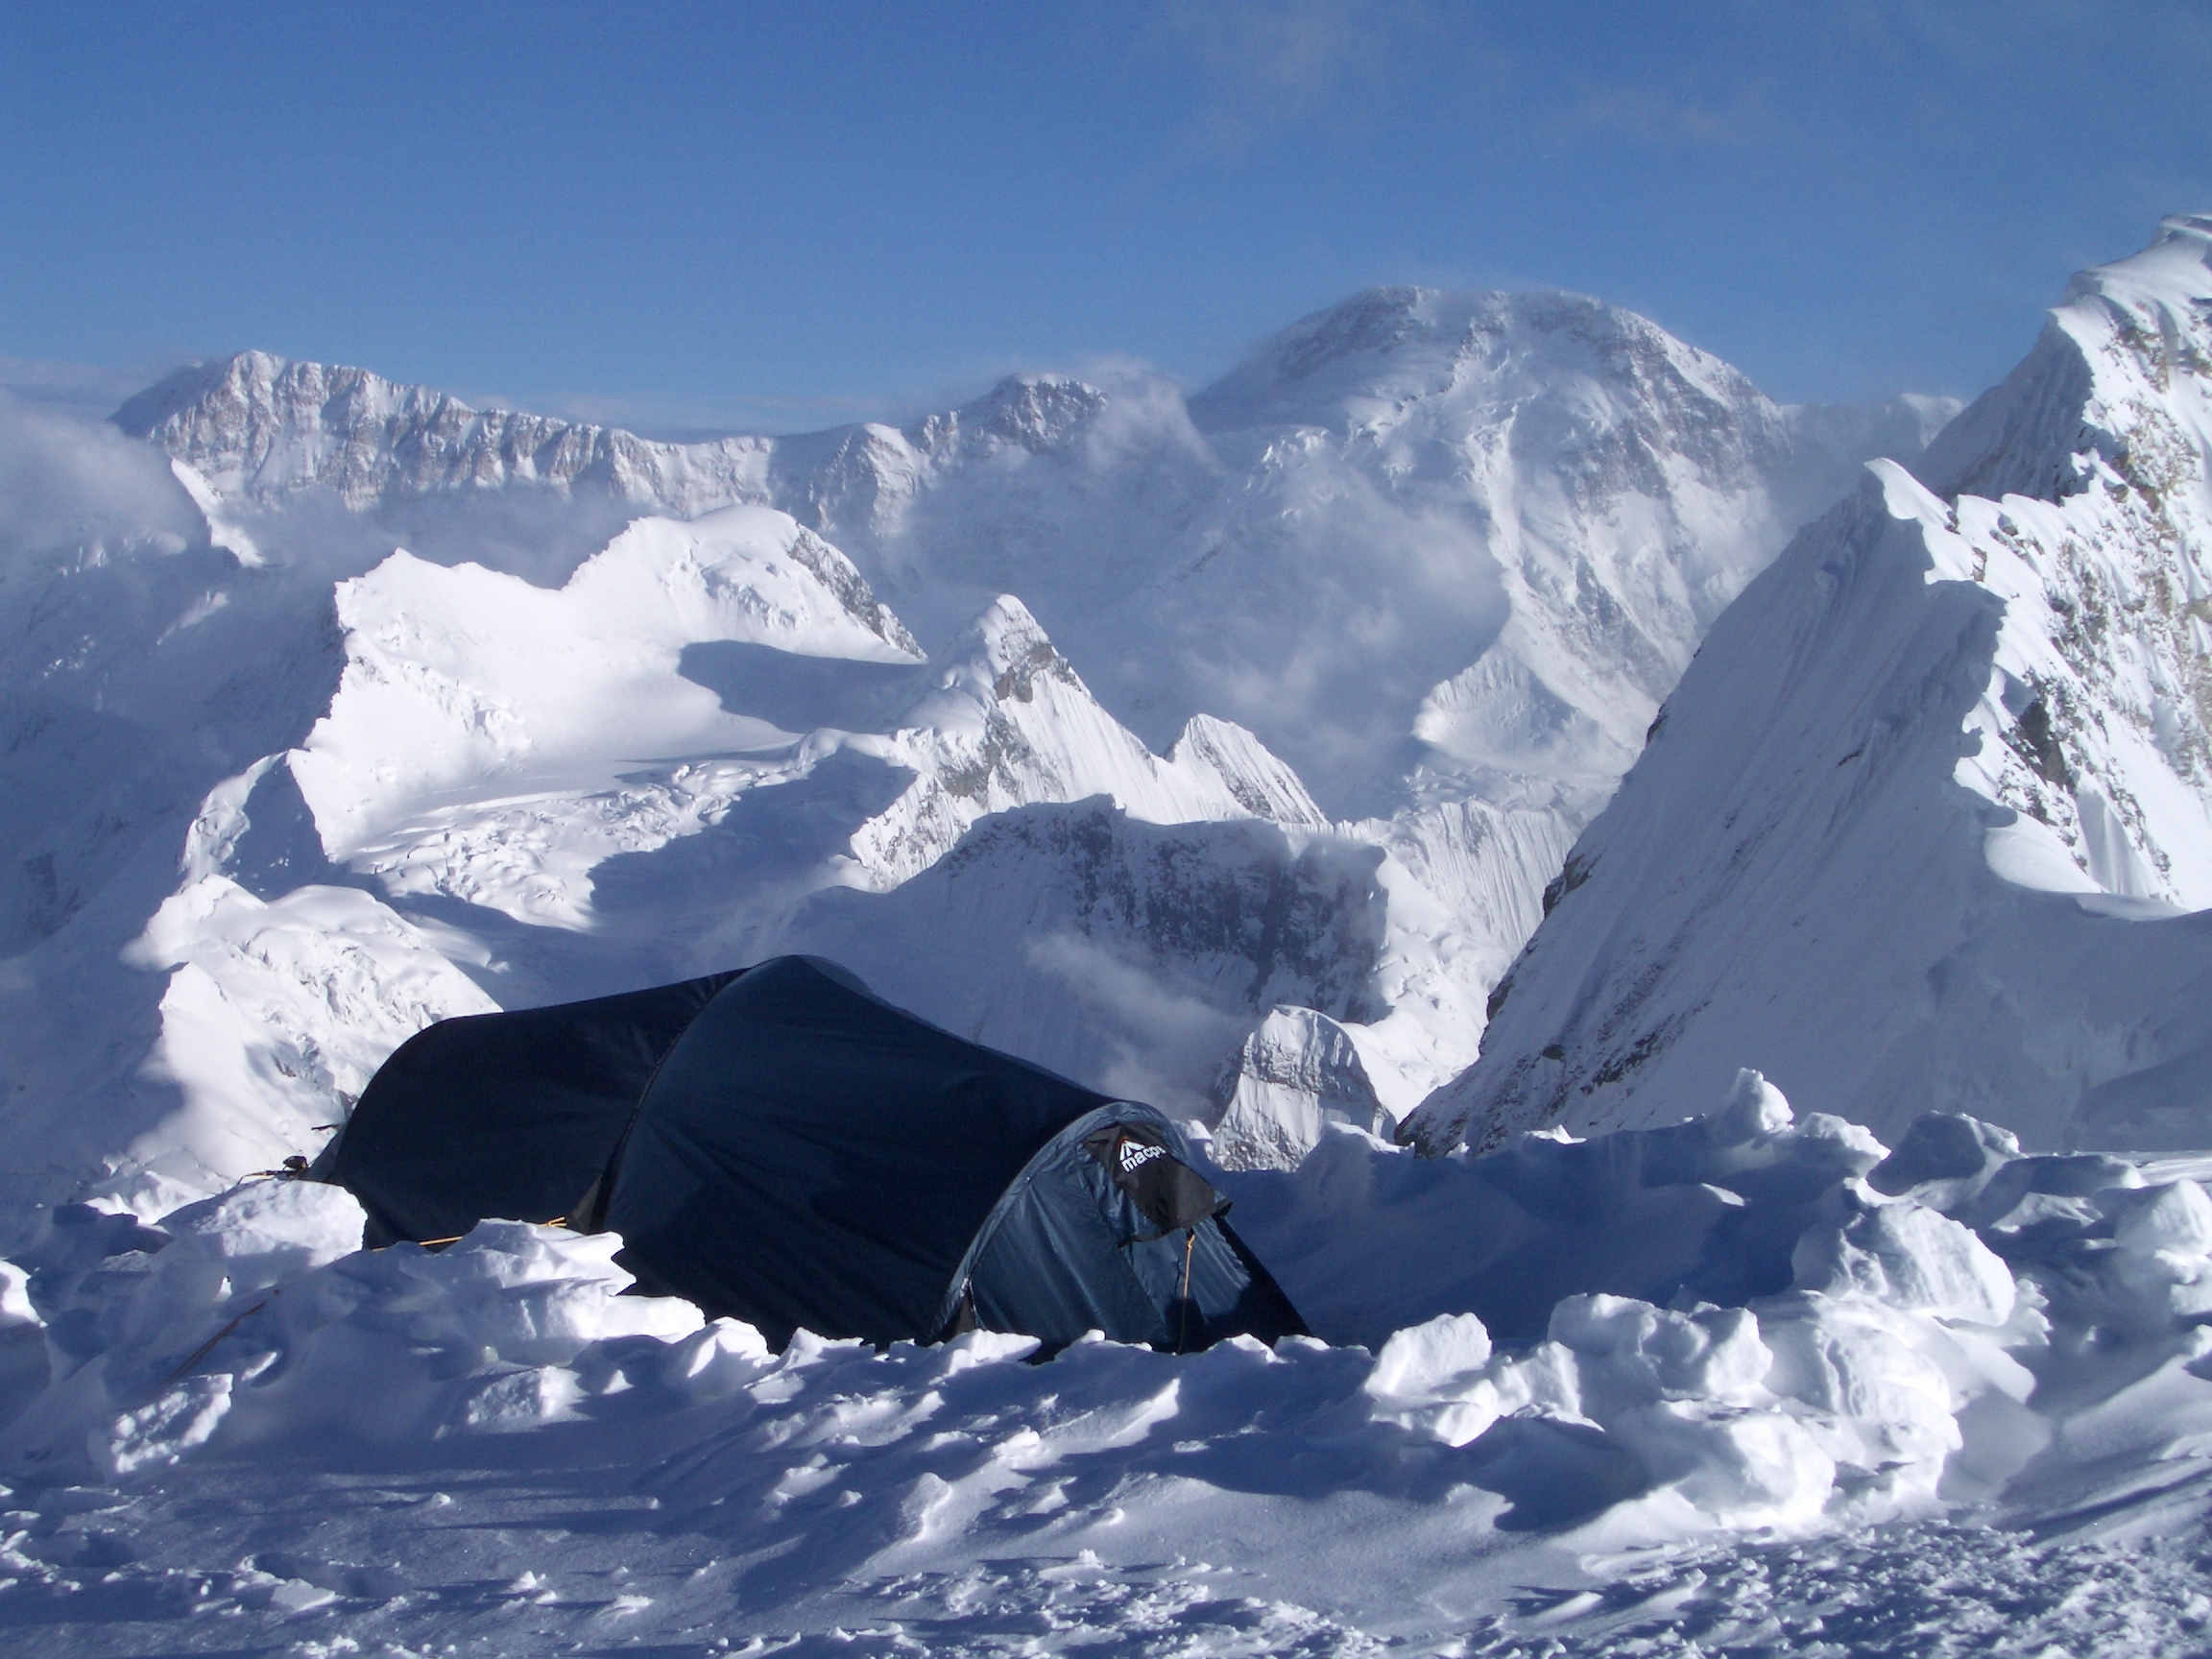 Our tent at camp 3 (Chapayev), Khan Tengri